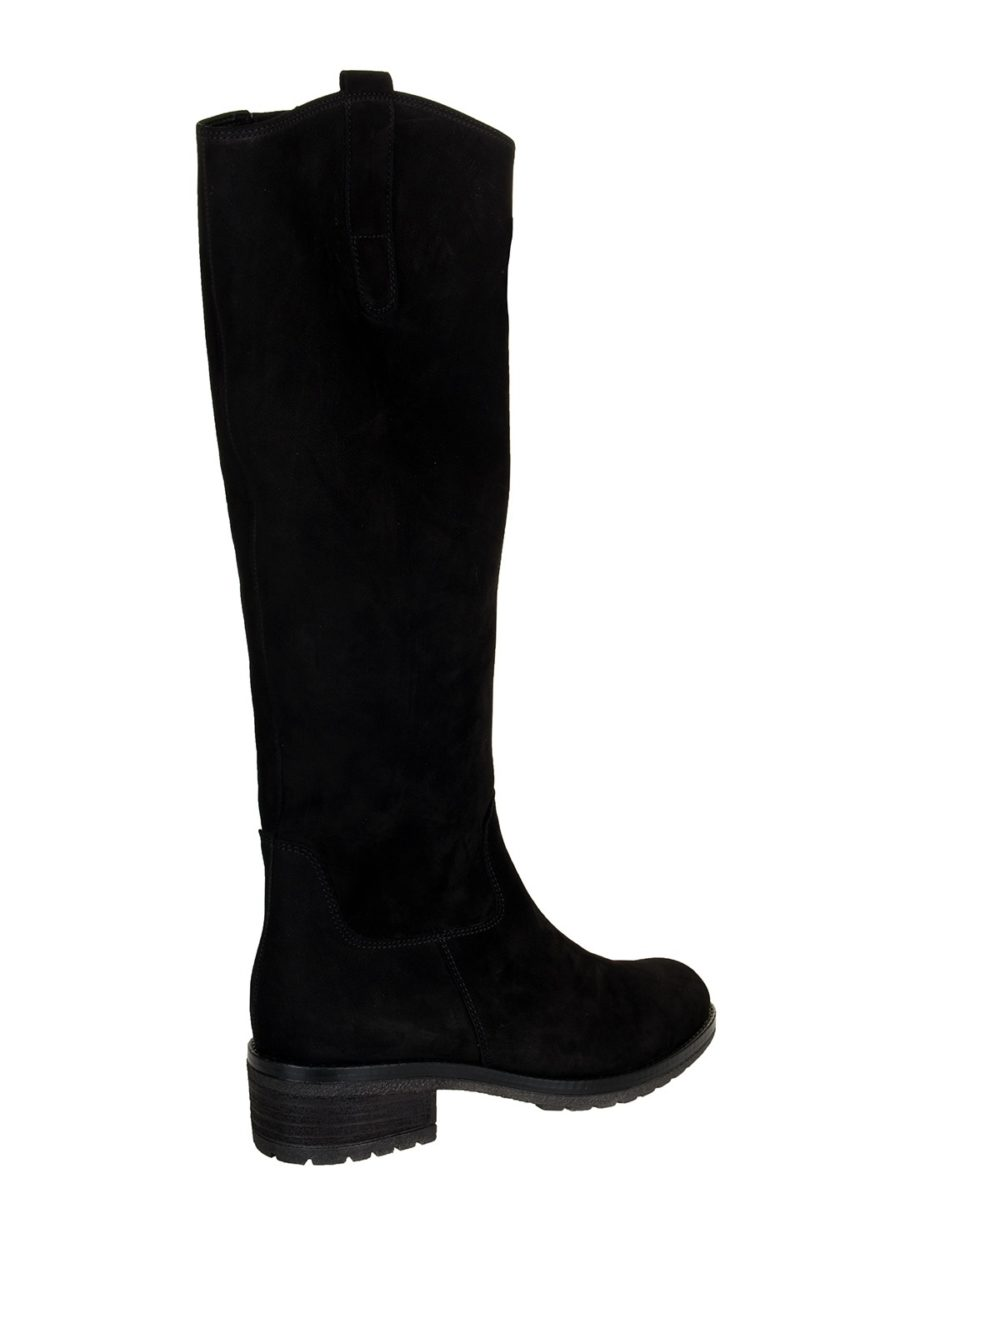 Shields Boots GB196